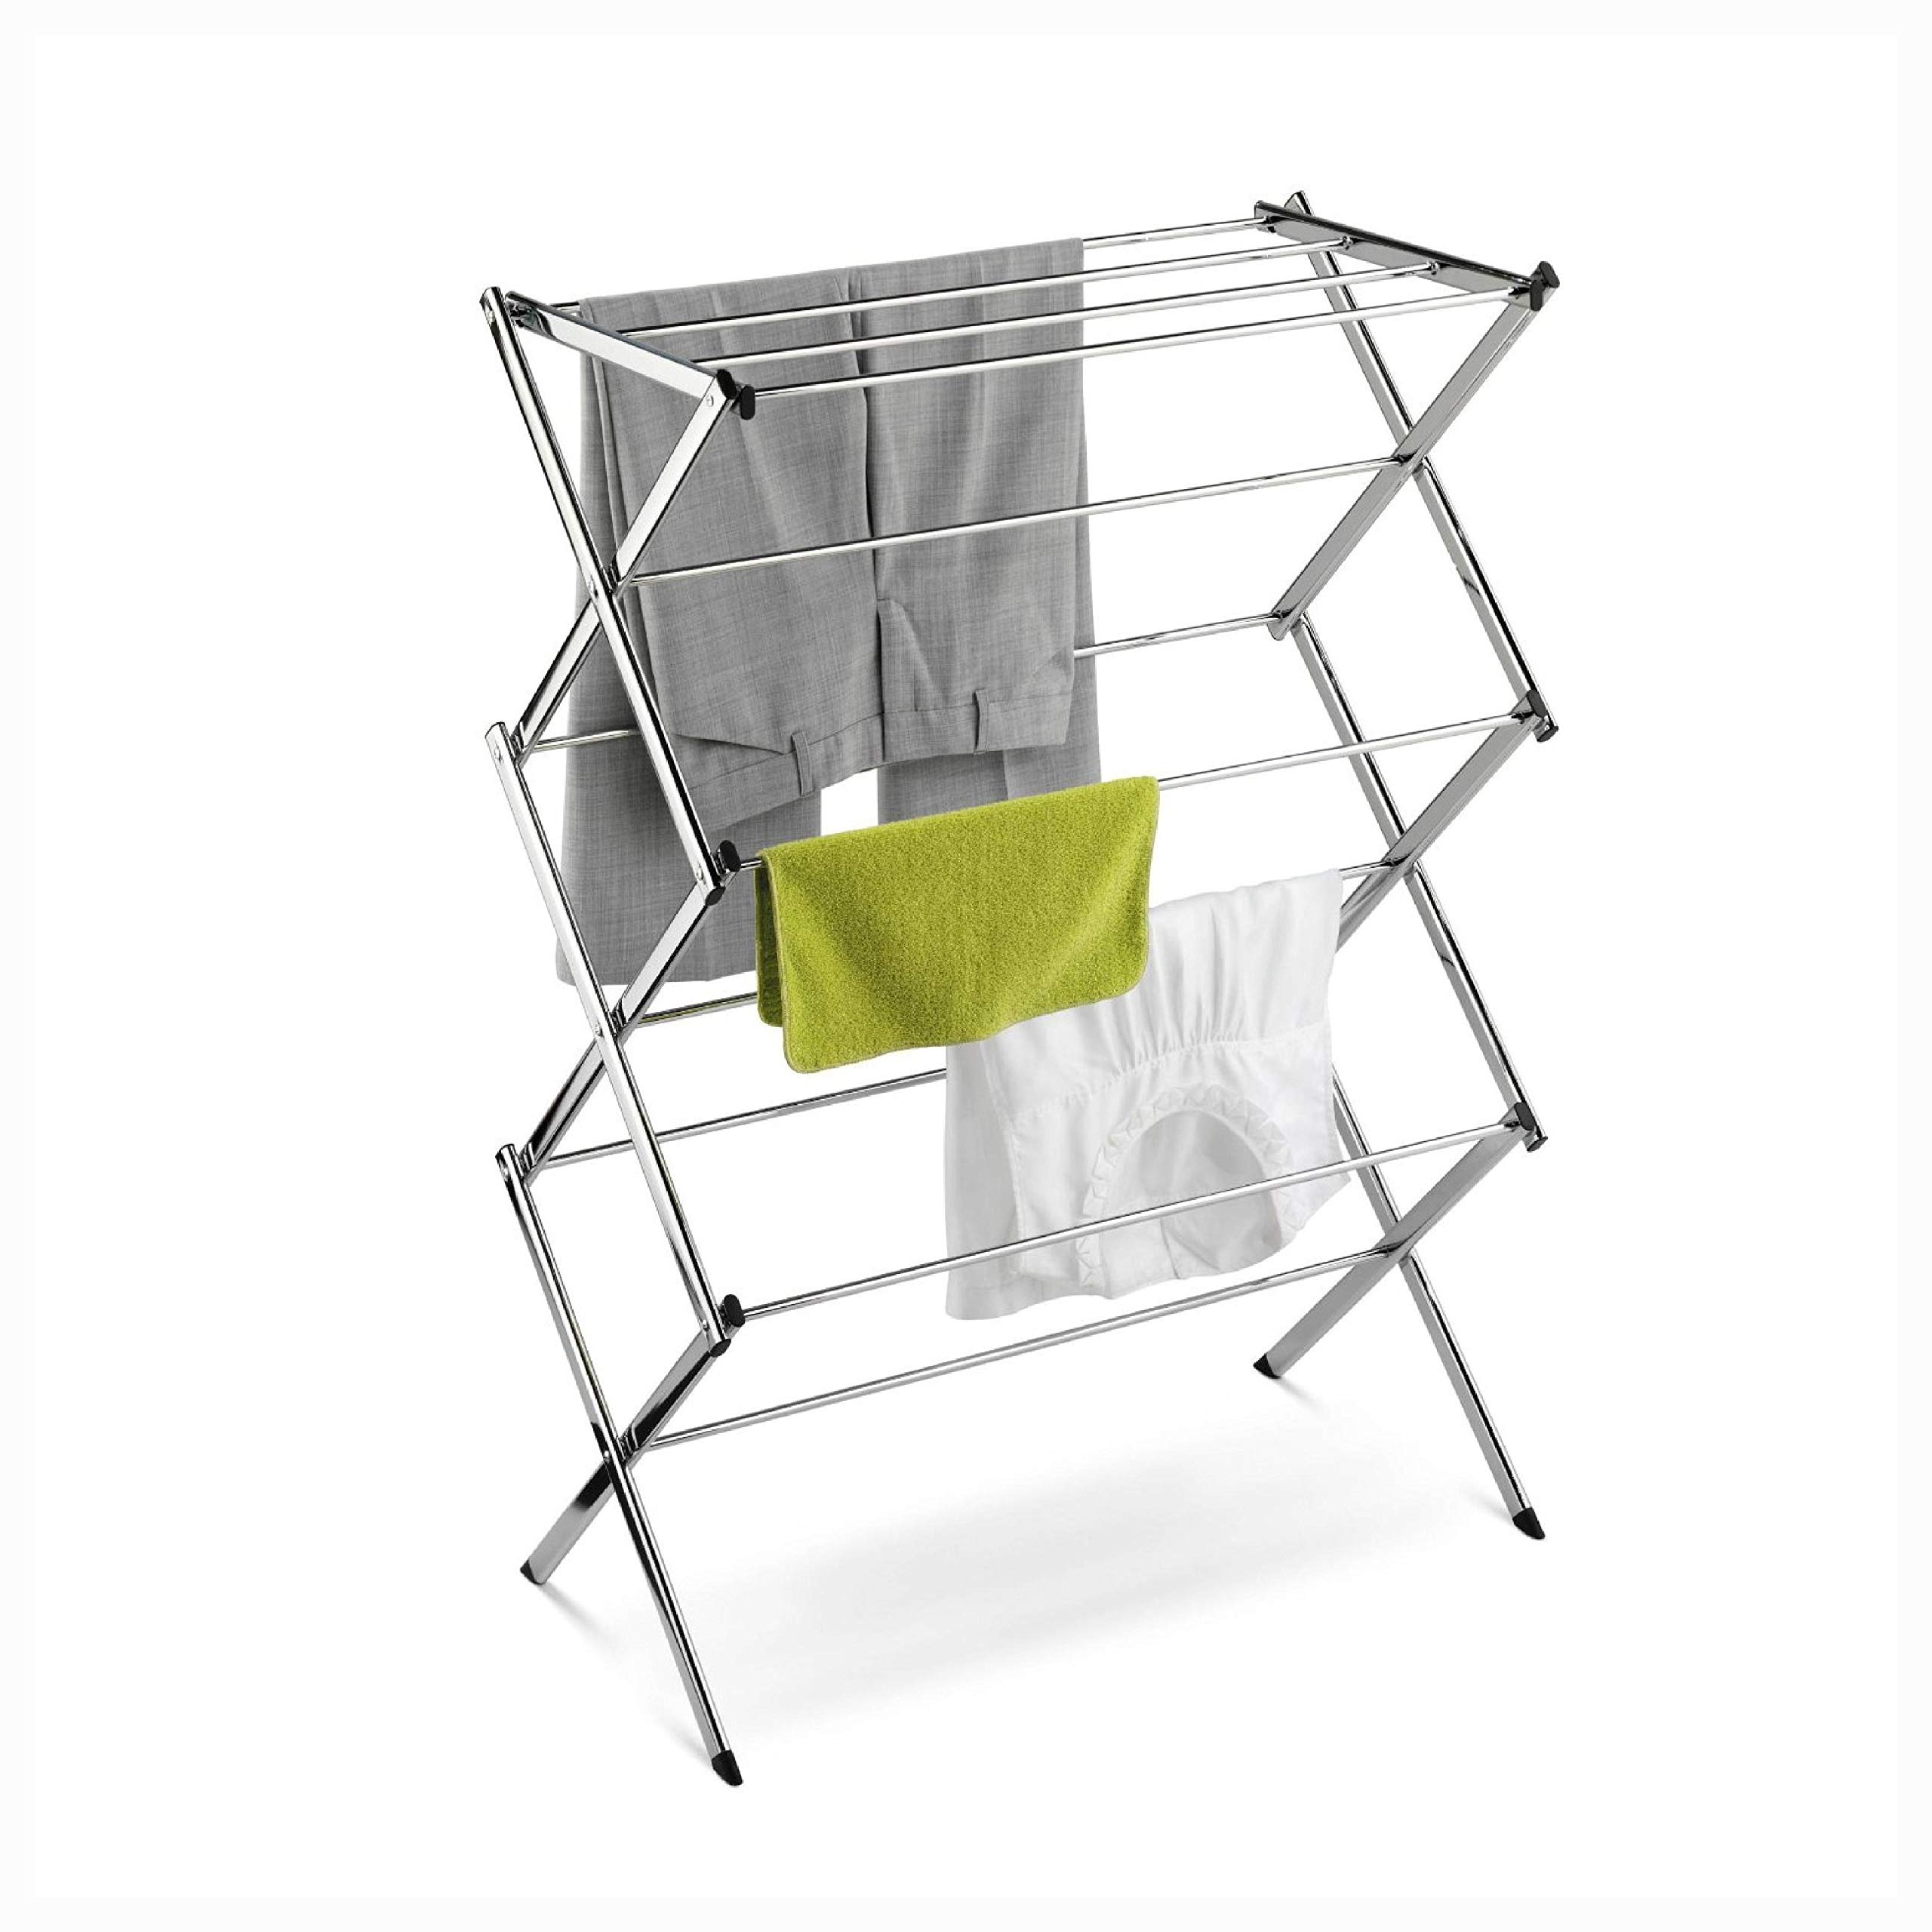 Commercial Clothe Dryin g Rack Laundry Dryer in Chrome, Commercial Clothes Drying Rack Laundry Dryer in Chrome